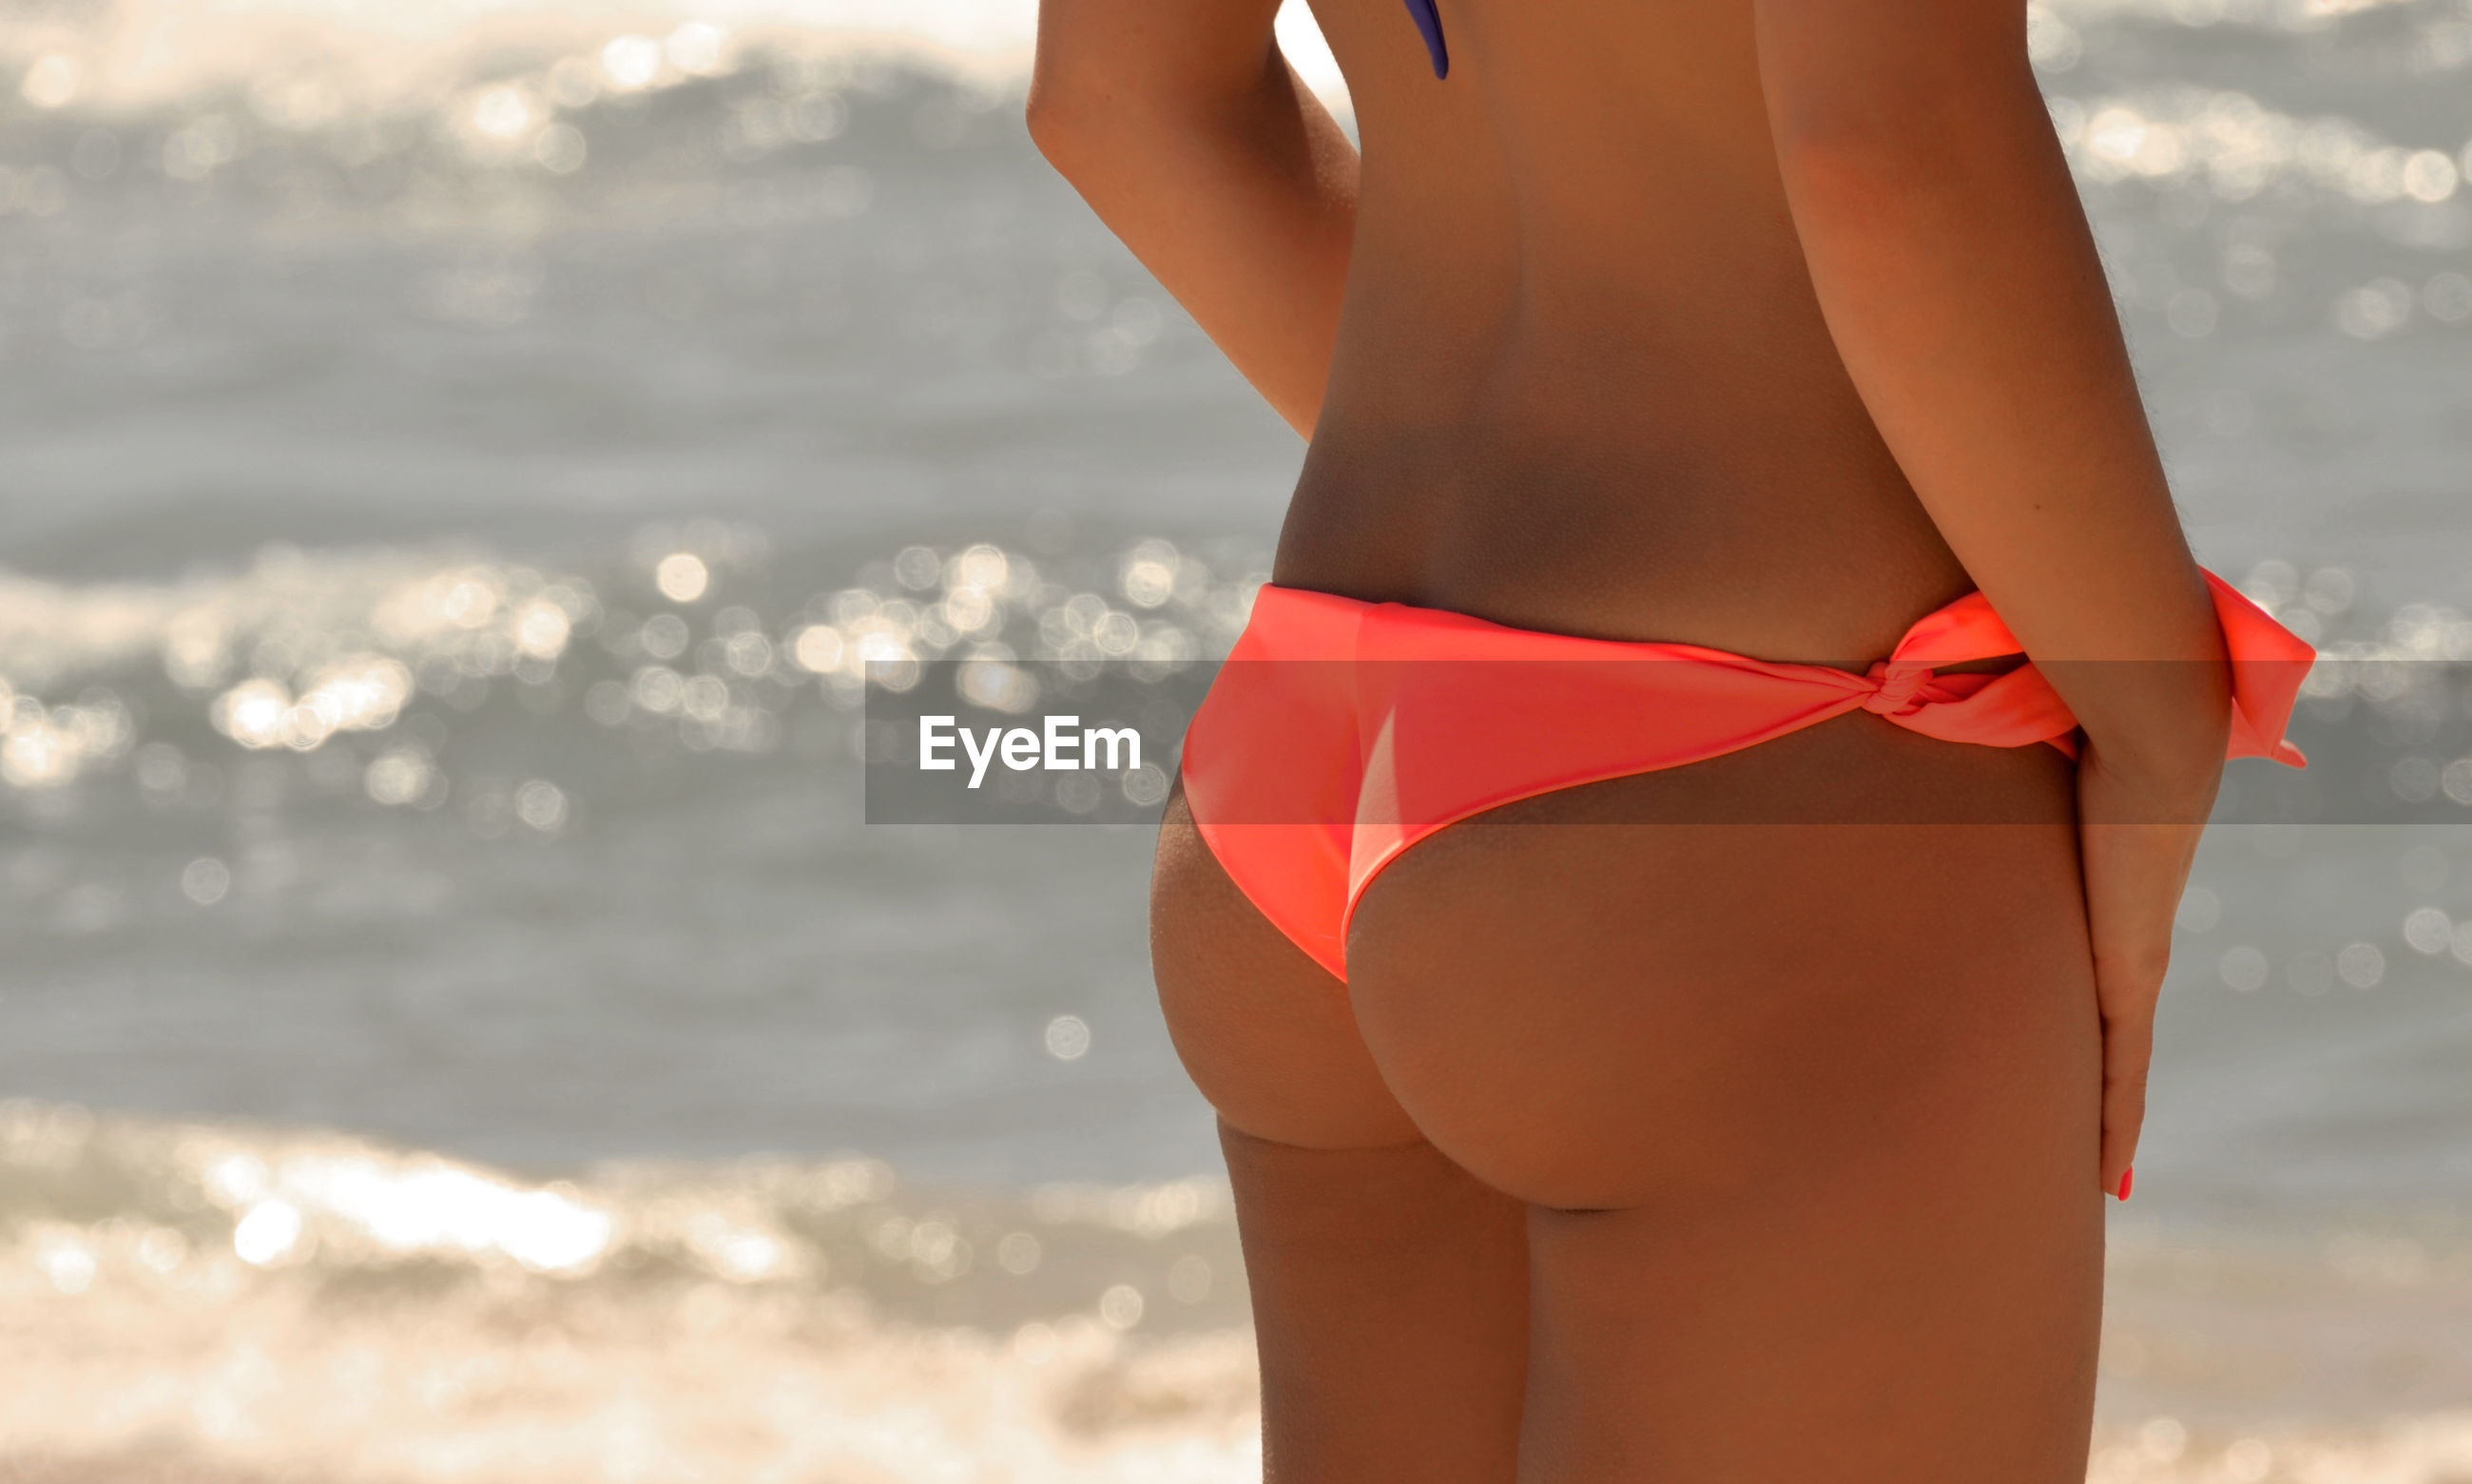 Midsection of young woman in bikini bottom standing at beach